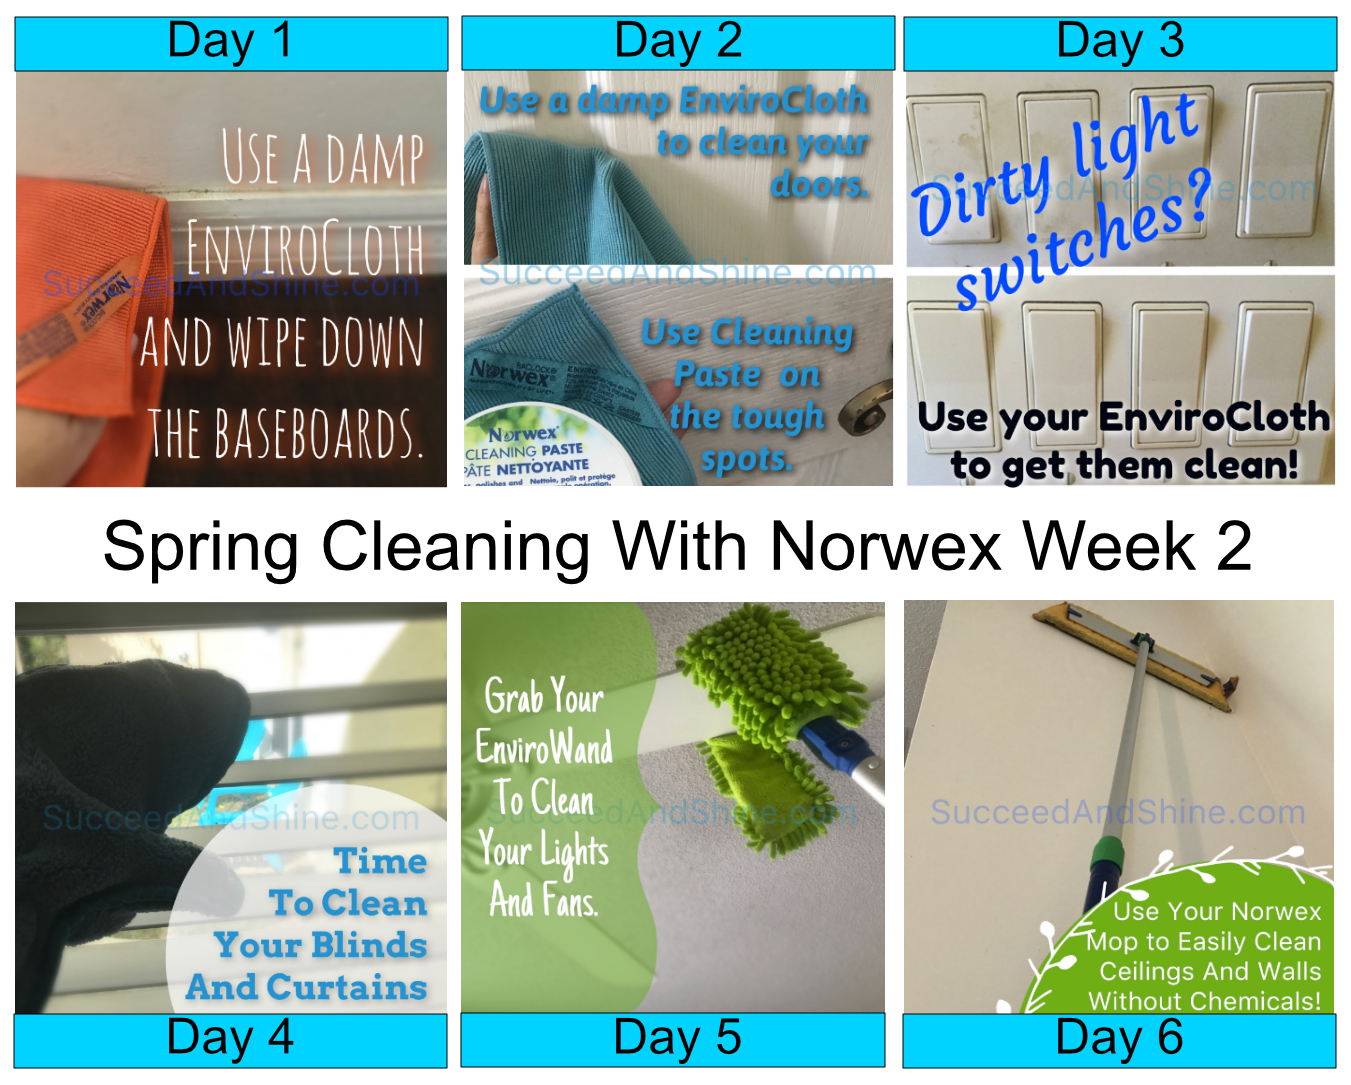 How To Use Norwex For Spring Cleaning Week 2 Succeed